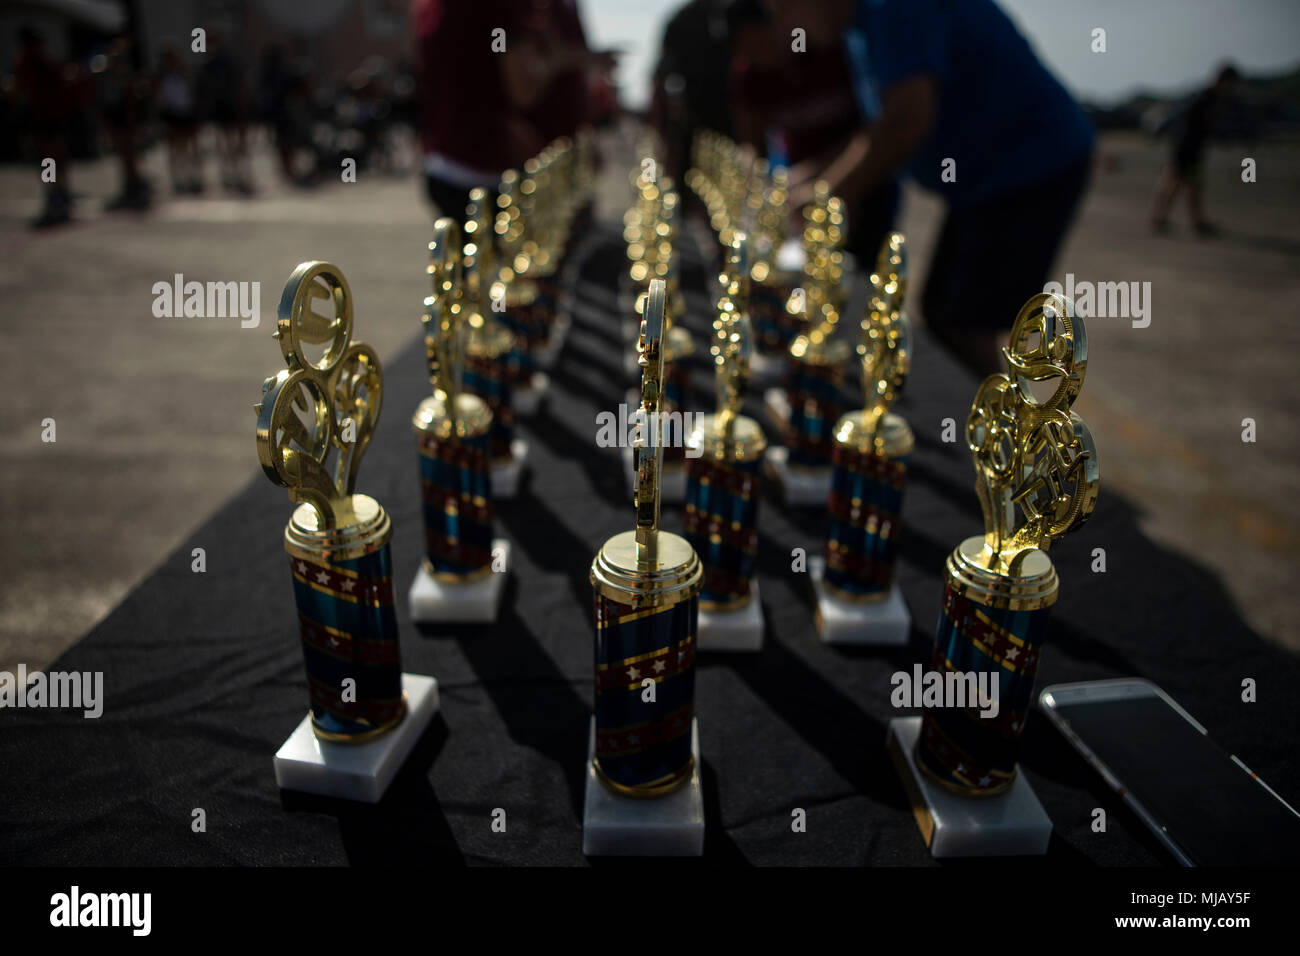 Trophies for top competitors are displayed during the Koa